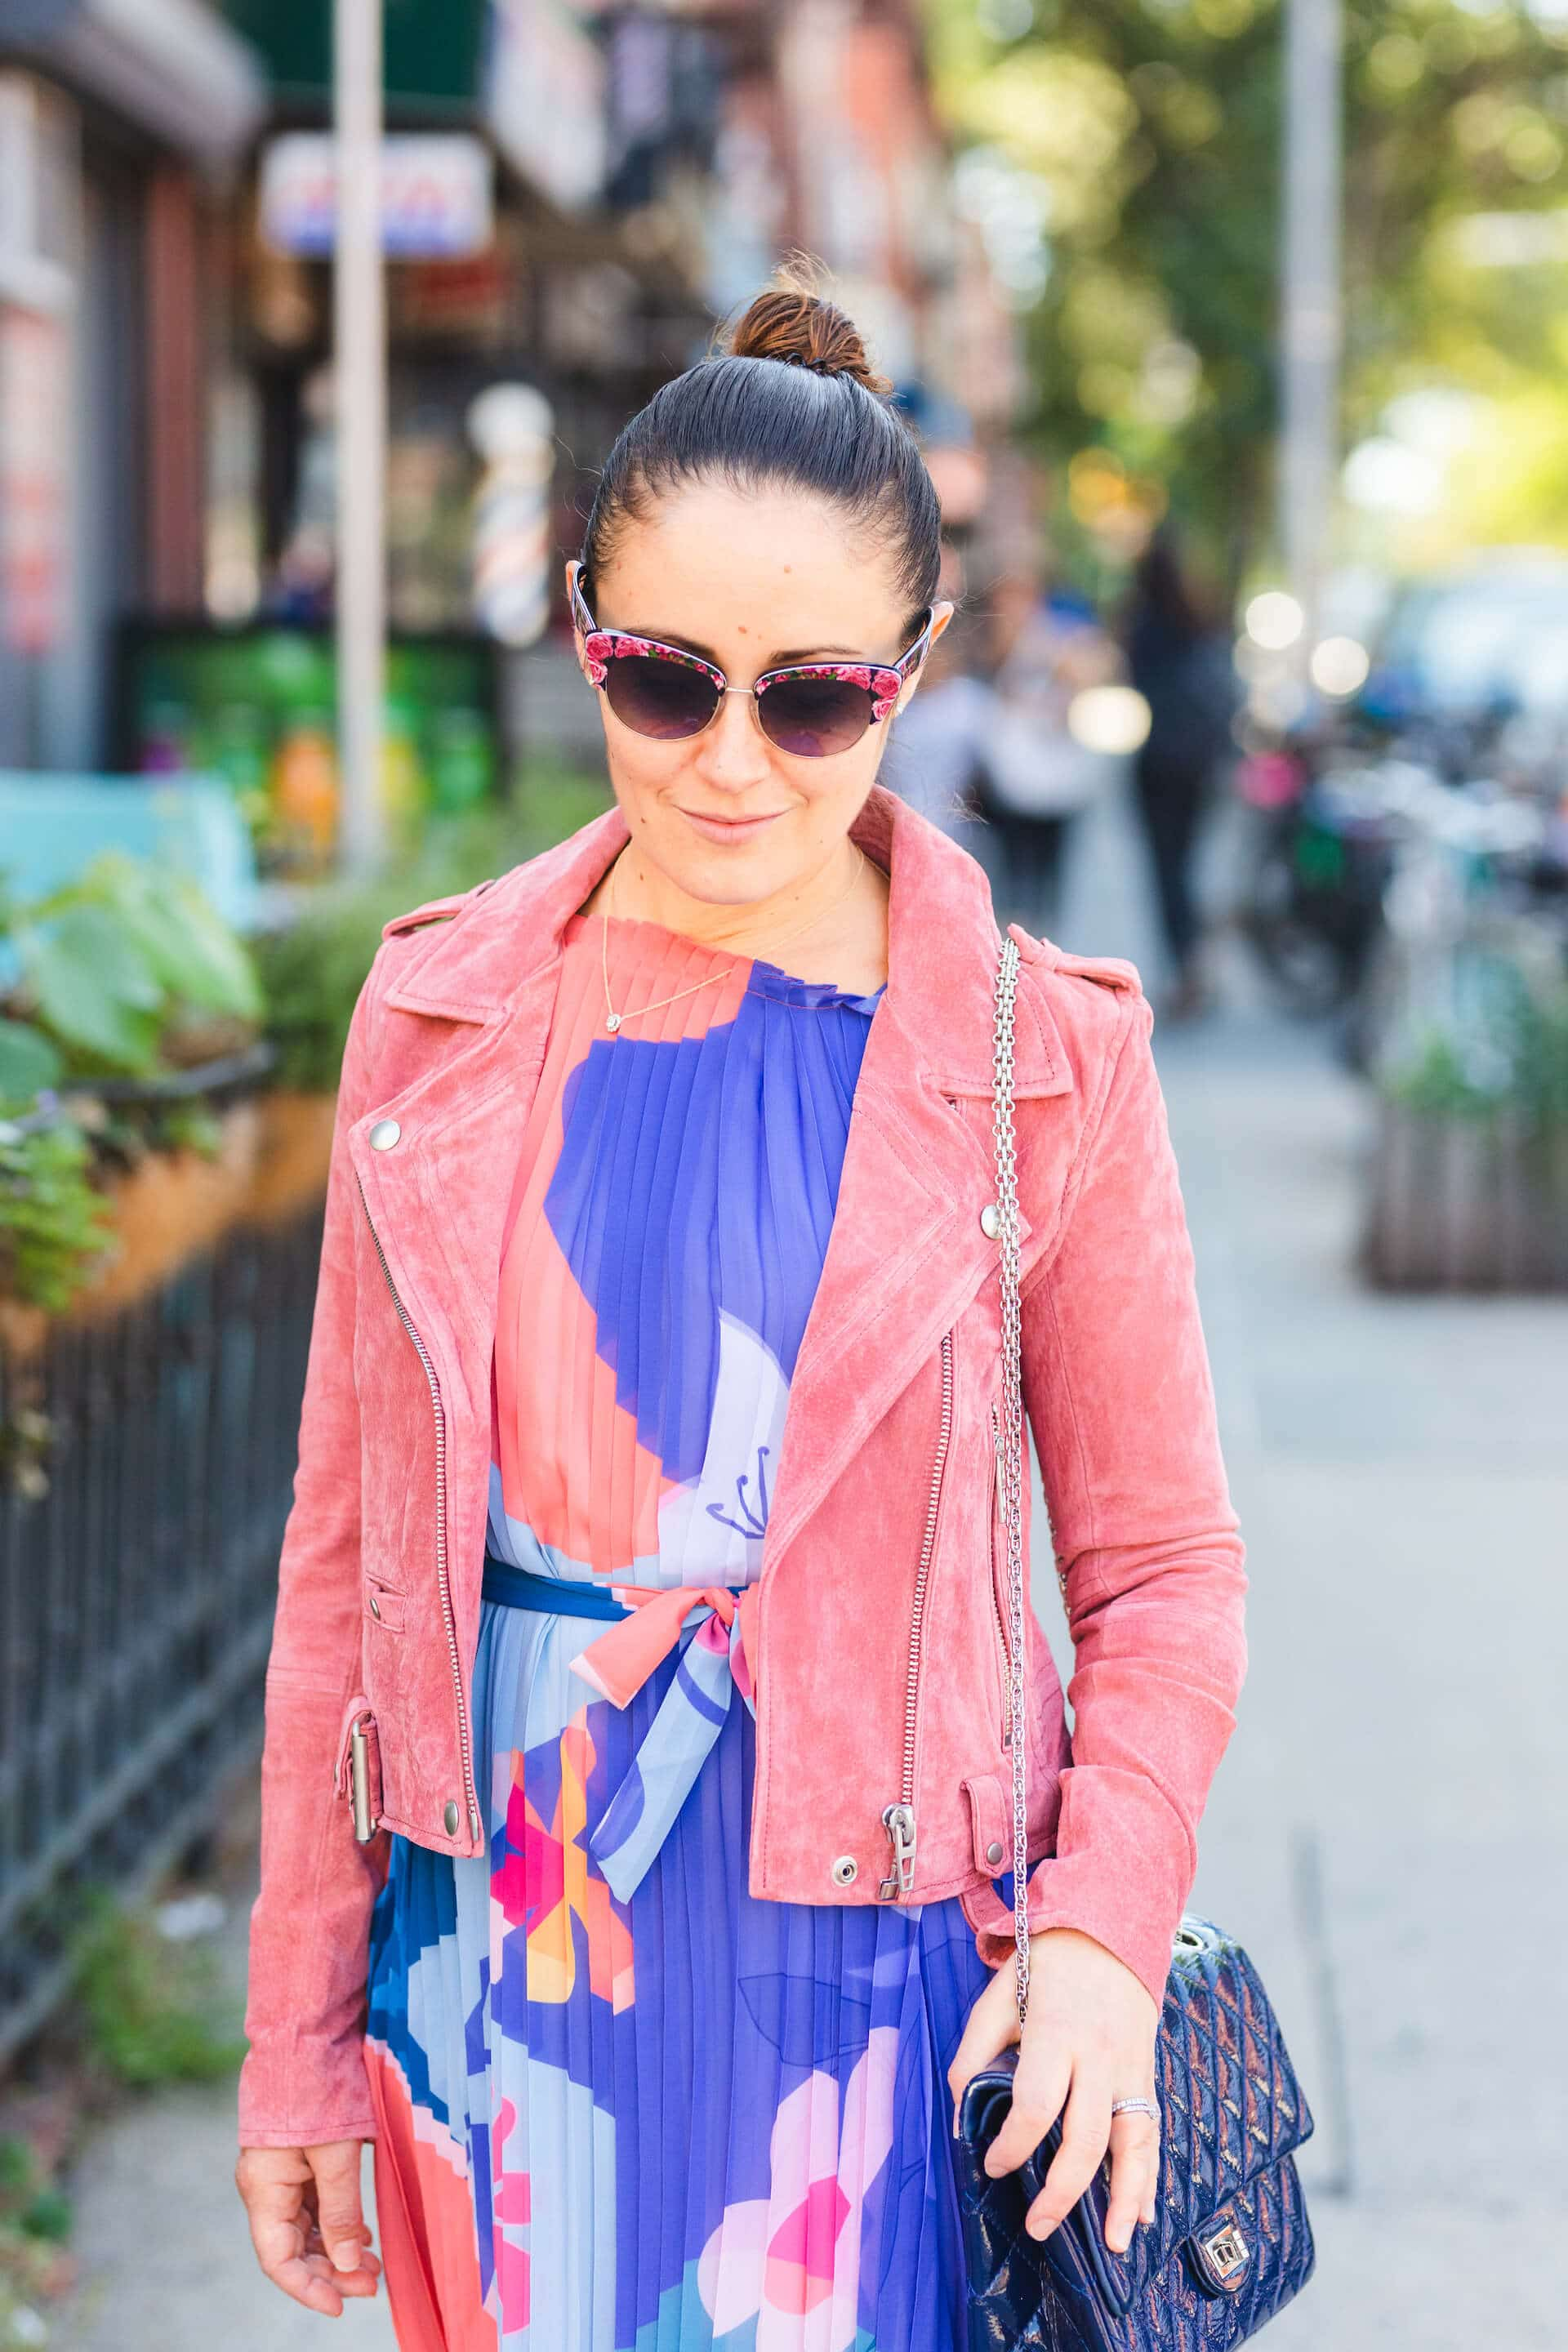 Pleated Dress with Rose Suede Moto Jacket and Pink Ballerina Flats Look by Modnitsa Styling